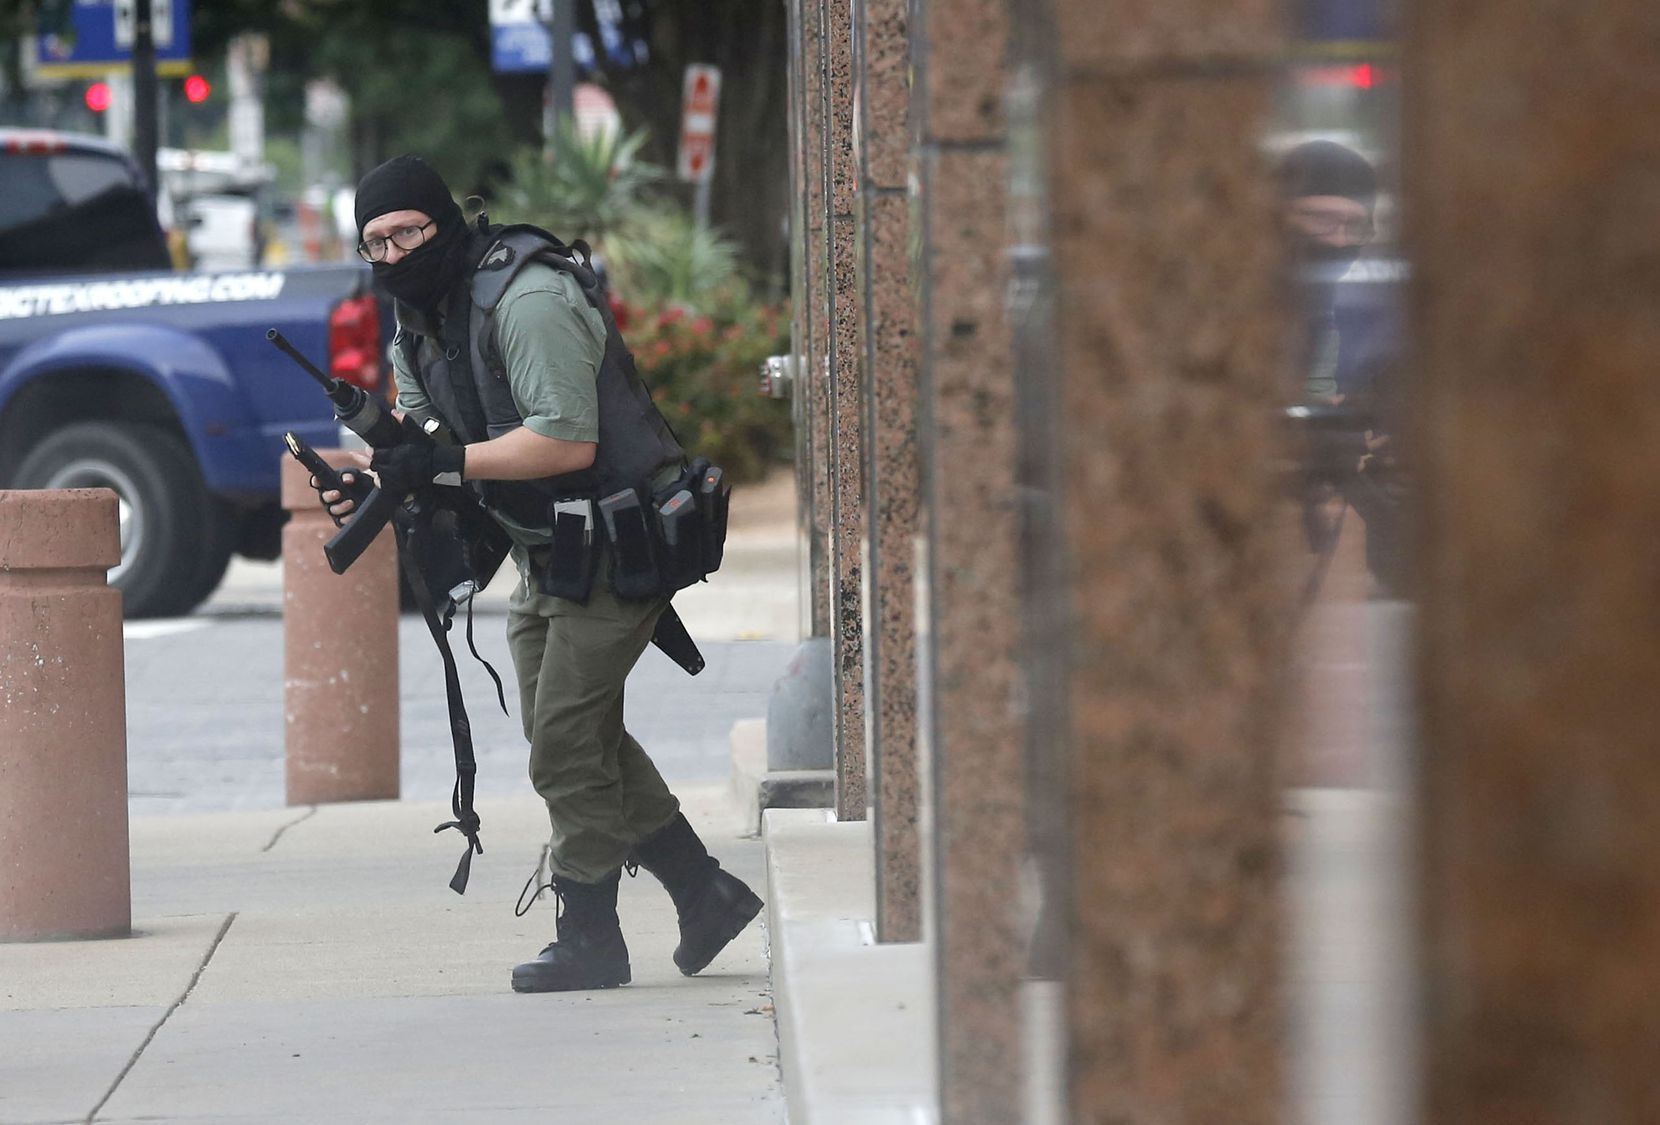 Armed with an AR-15 style rife, Brian Isaack Clyde (shown) attacks the Earle Cabell federal courthouse Monday morning, June 17, 2019 at the in downtown Dallas. Clyde had expressed a number of antigovernment grievances and had mentioned the Boogaloo Boys before the extremist movement was widely known, the head of the FBI Dallas office said.